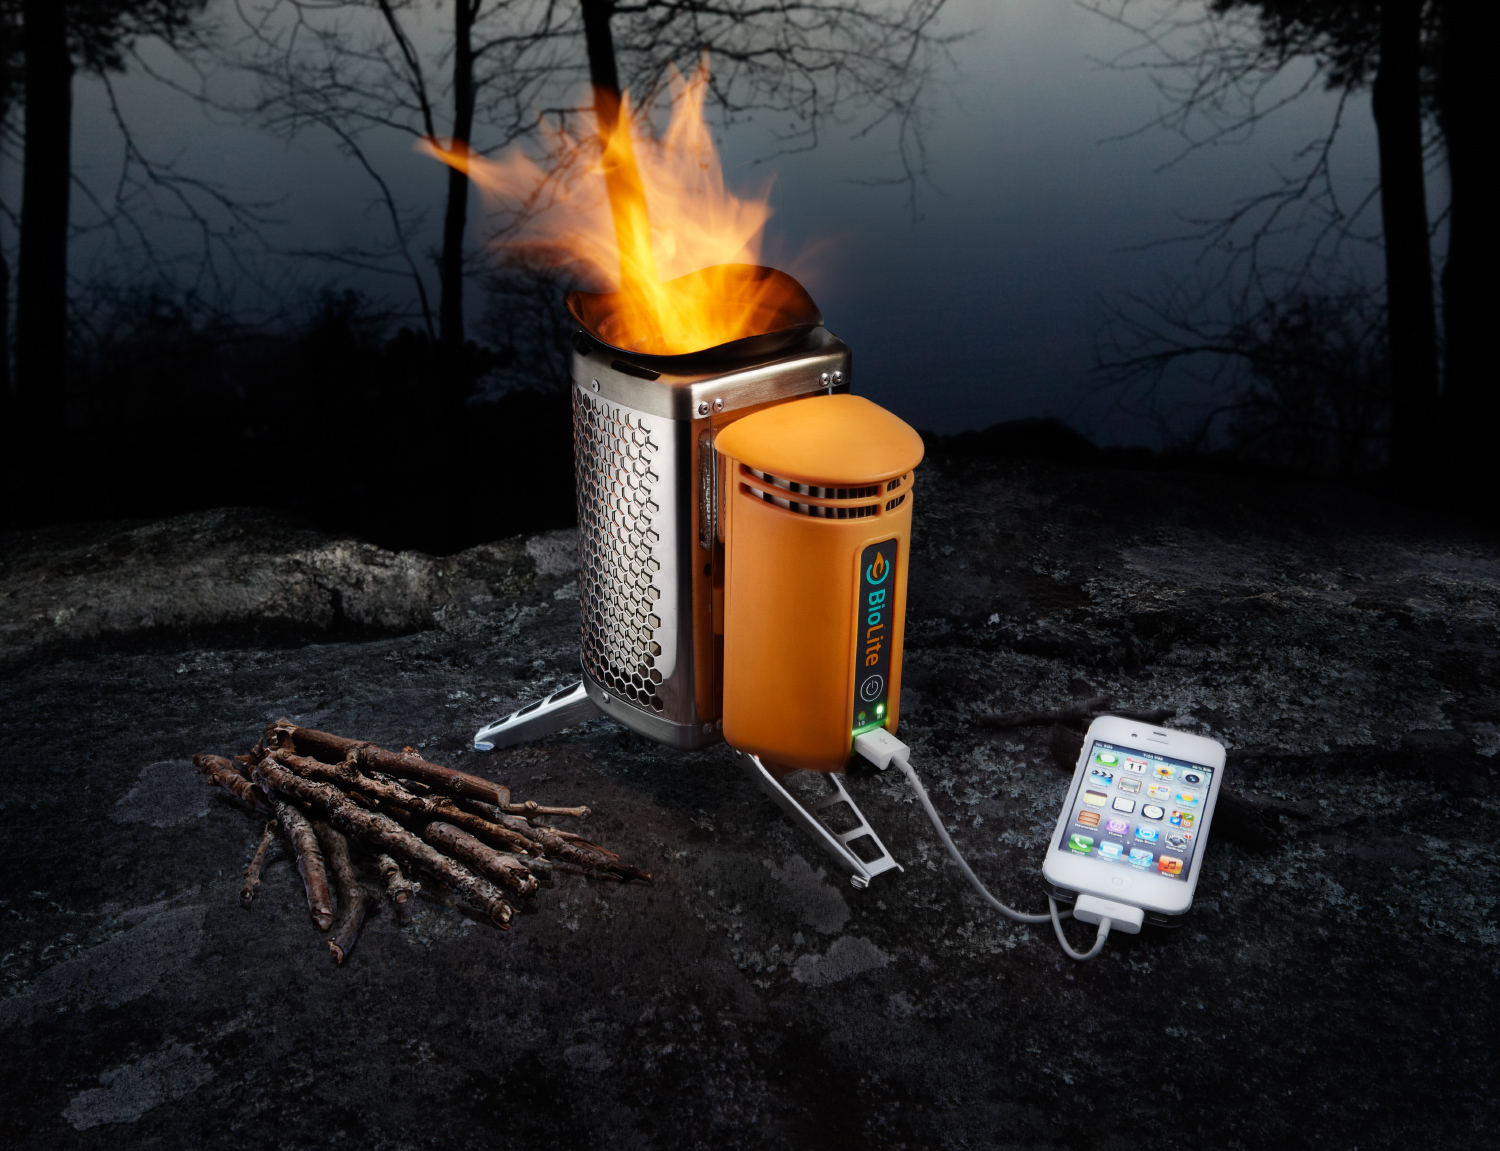 BioLite camp stove with thermoelectric generator